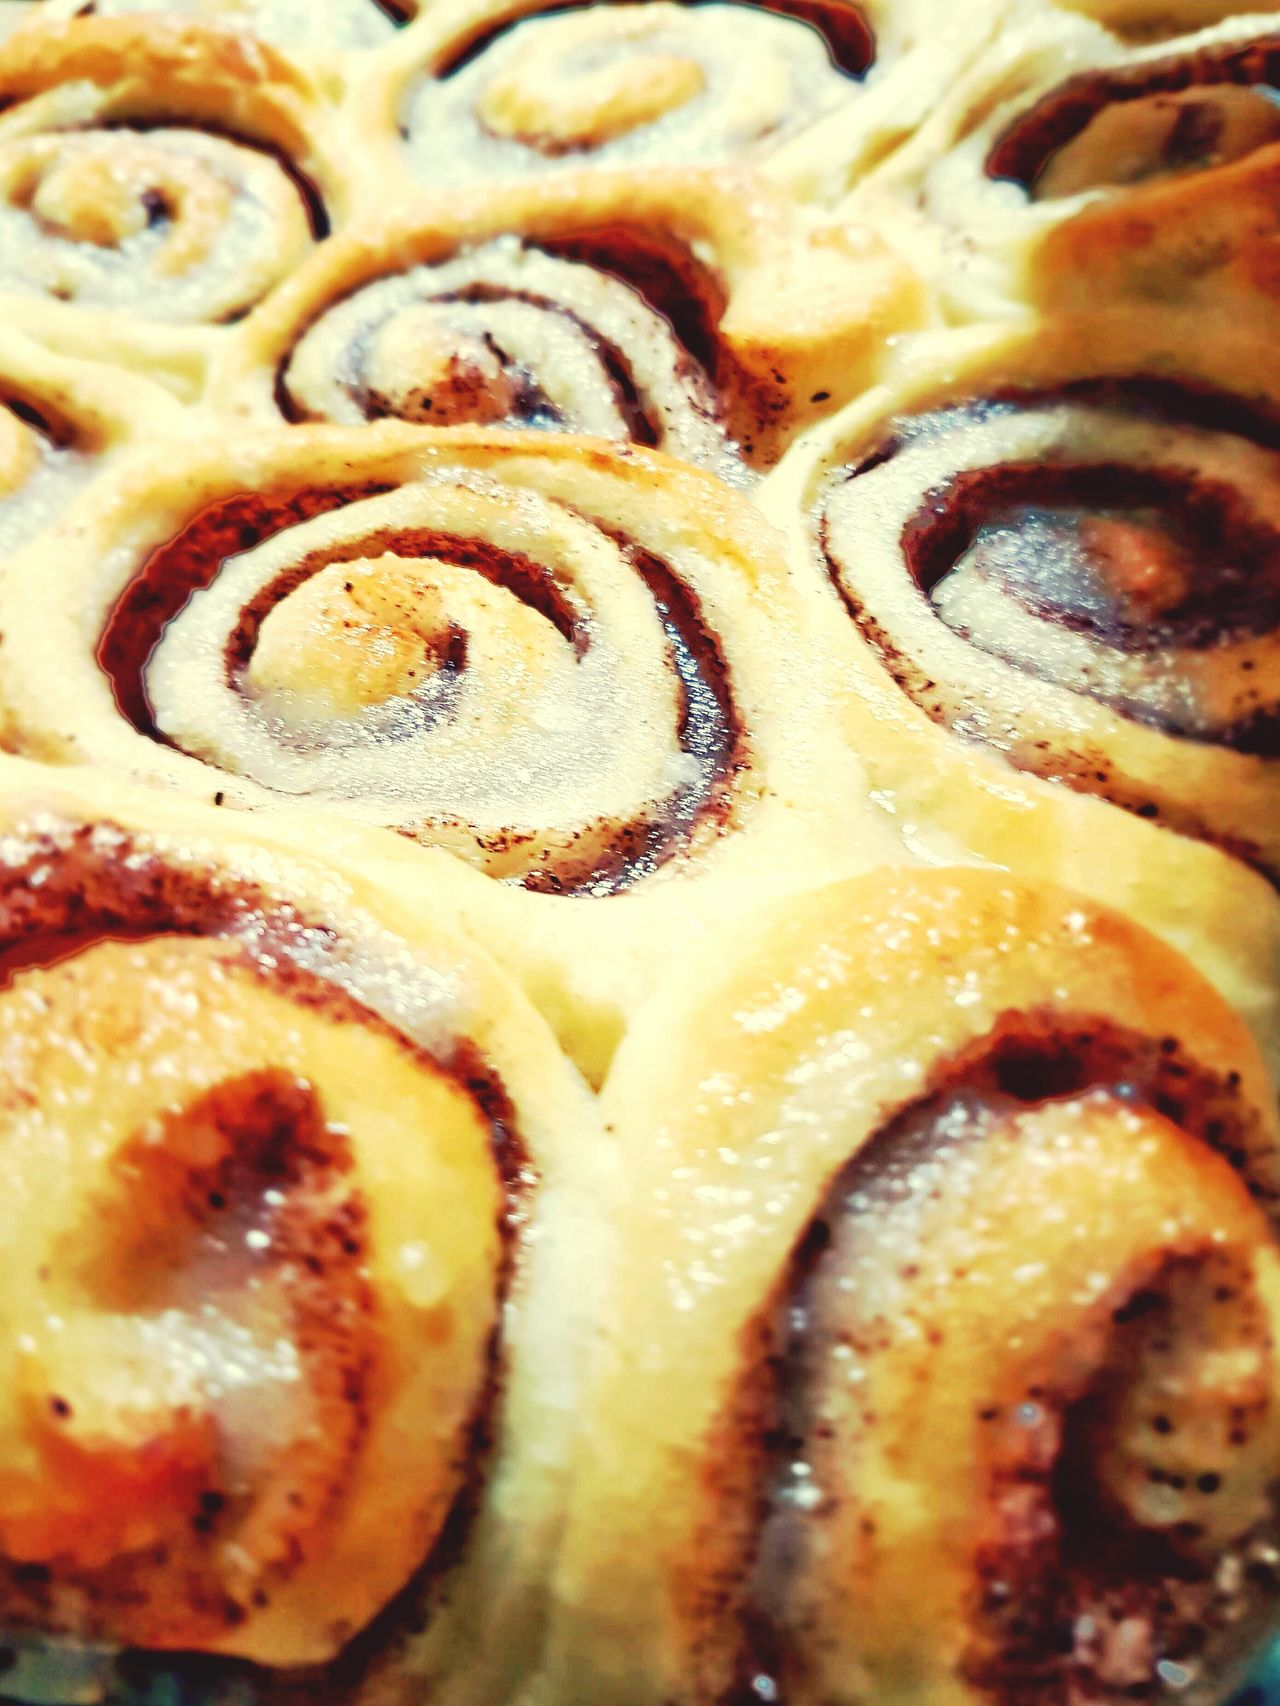 Cinnamon rolls Food And Drink Food Freshness Sweet Food Ready-to-eat Temptation Extreme Close Up Dessert Snack Appetizer Backgrounds Close-up Detail Eating Time Food♡ Foodlover Foodpicture Sweets Sweet♡ Cake♥ Cake Pastries Pastrychef Pastrycook Pastrylover